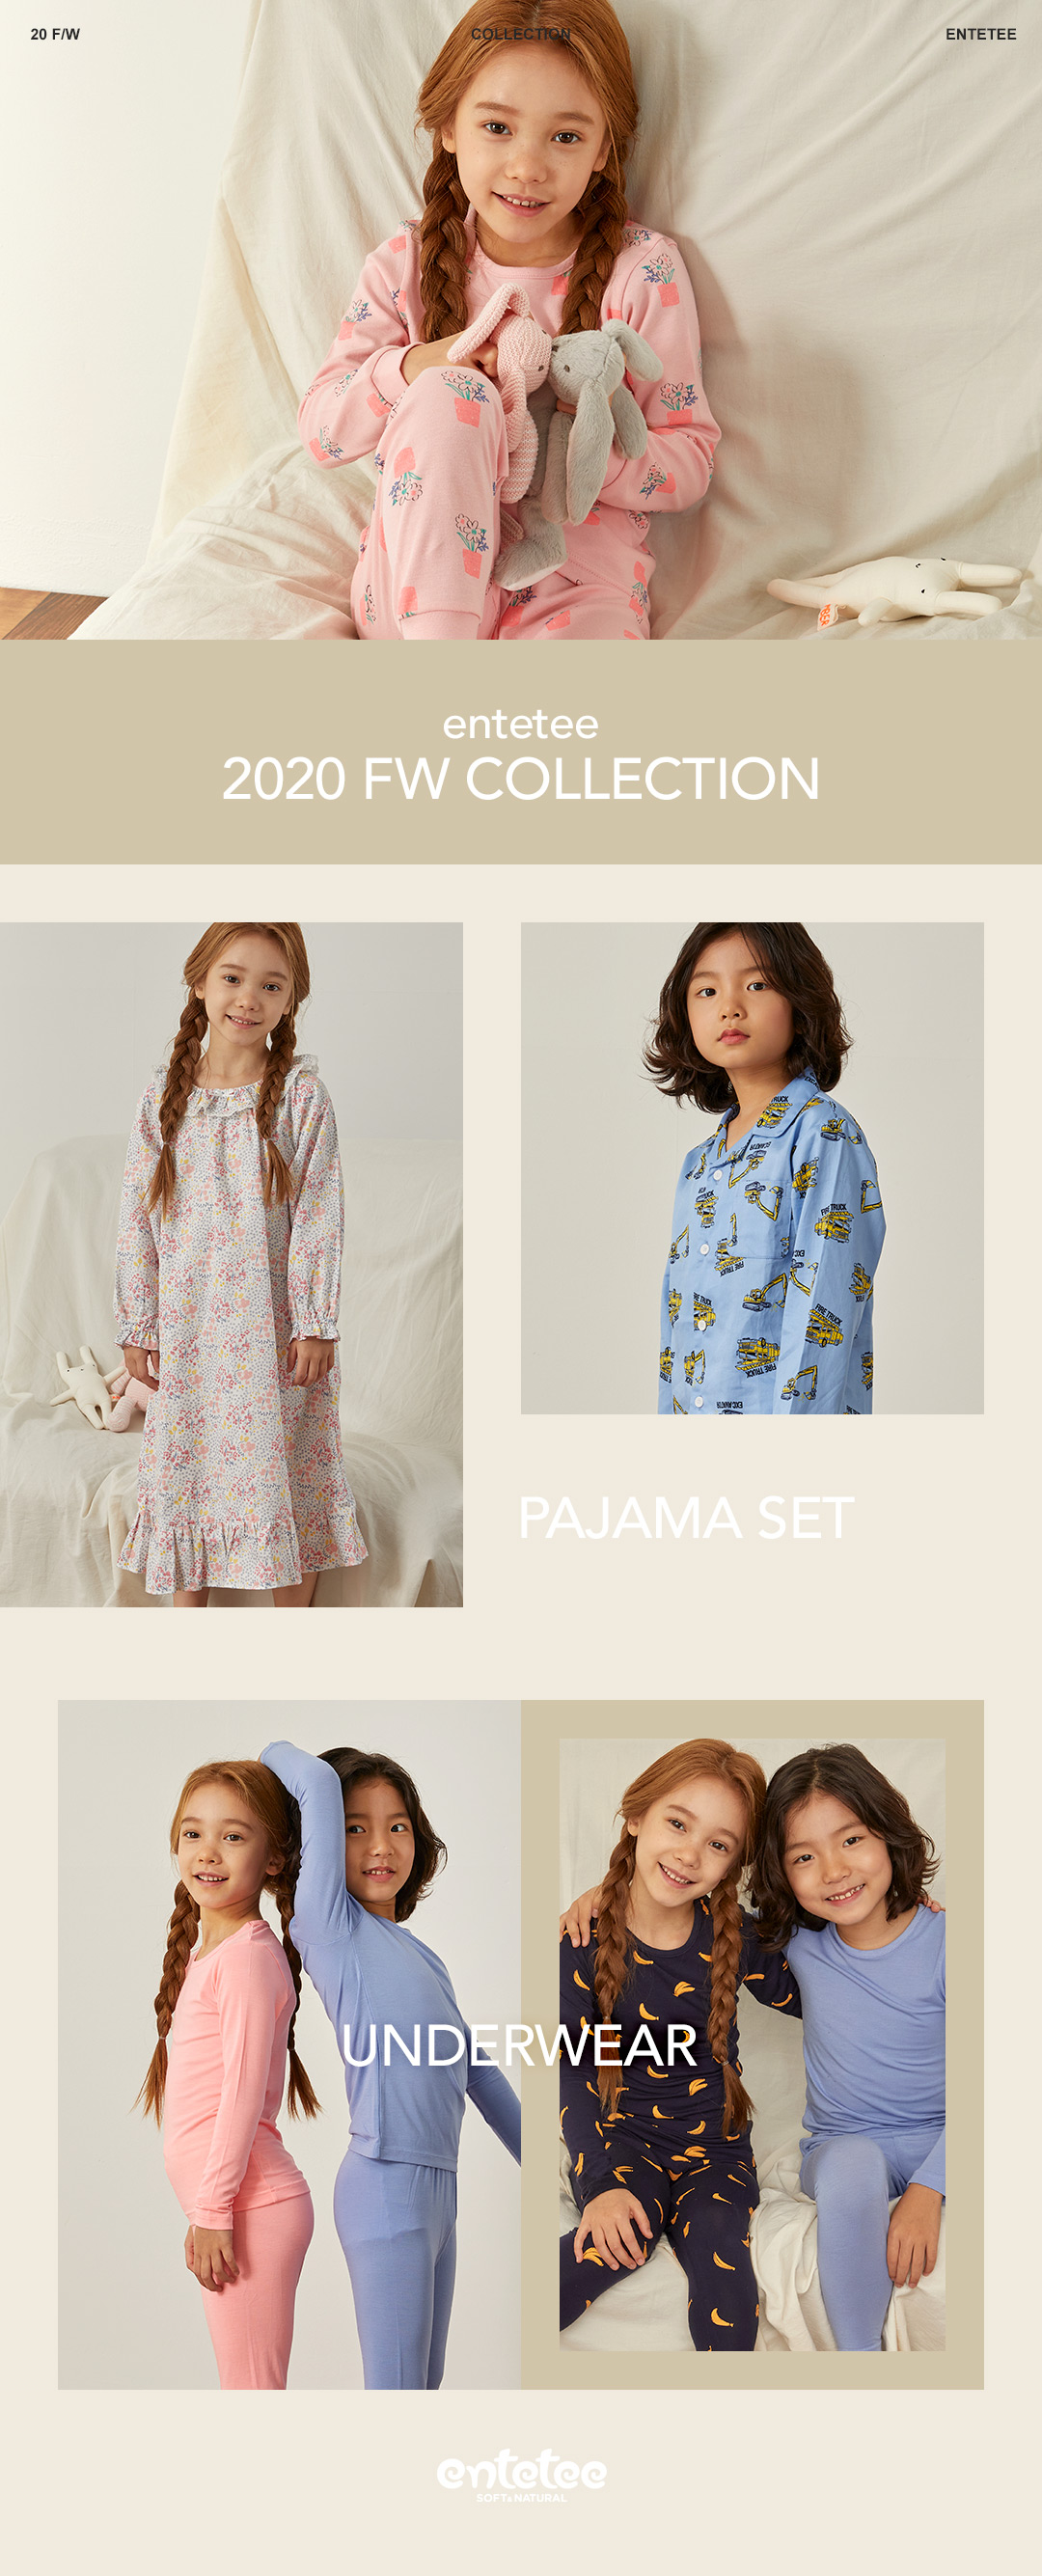 [앙떼떼] 2020 FW COLLECTION